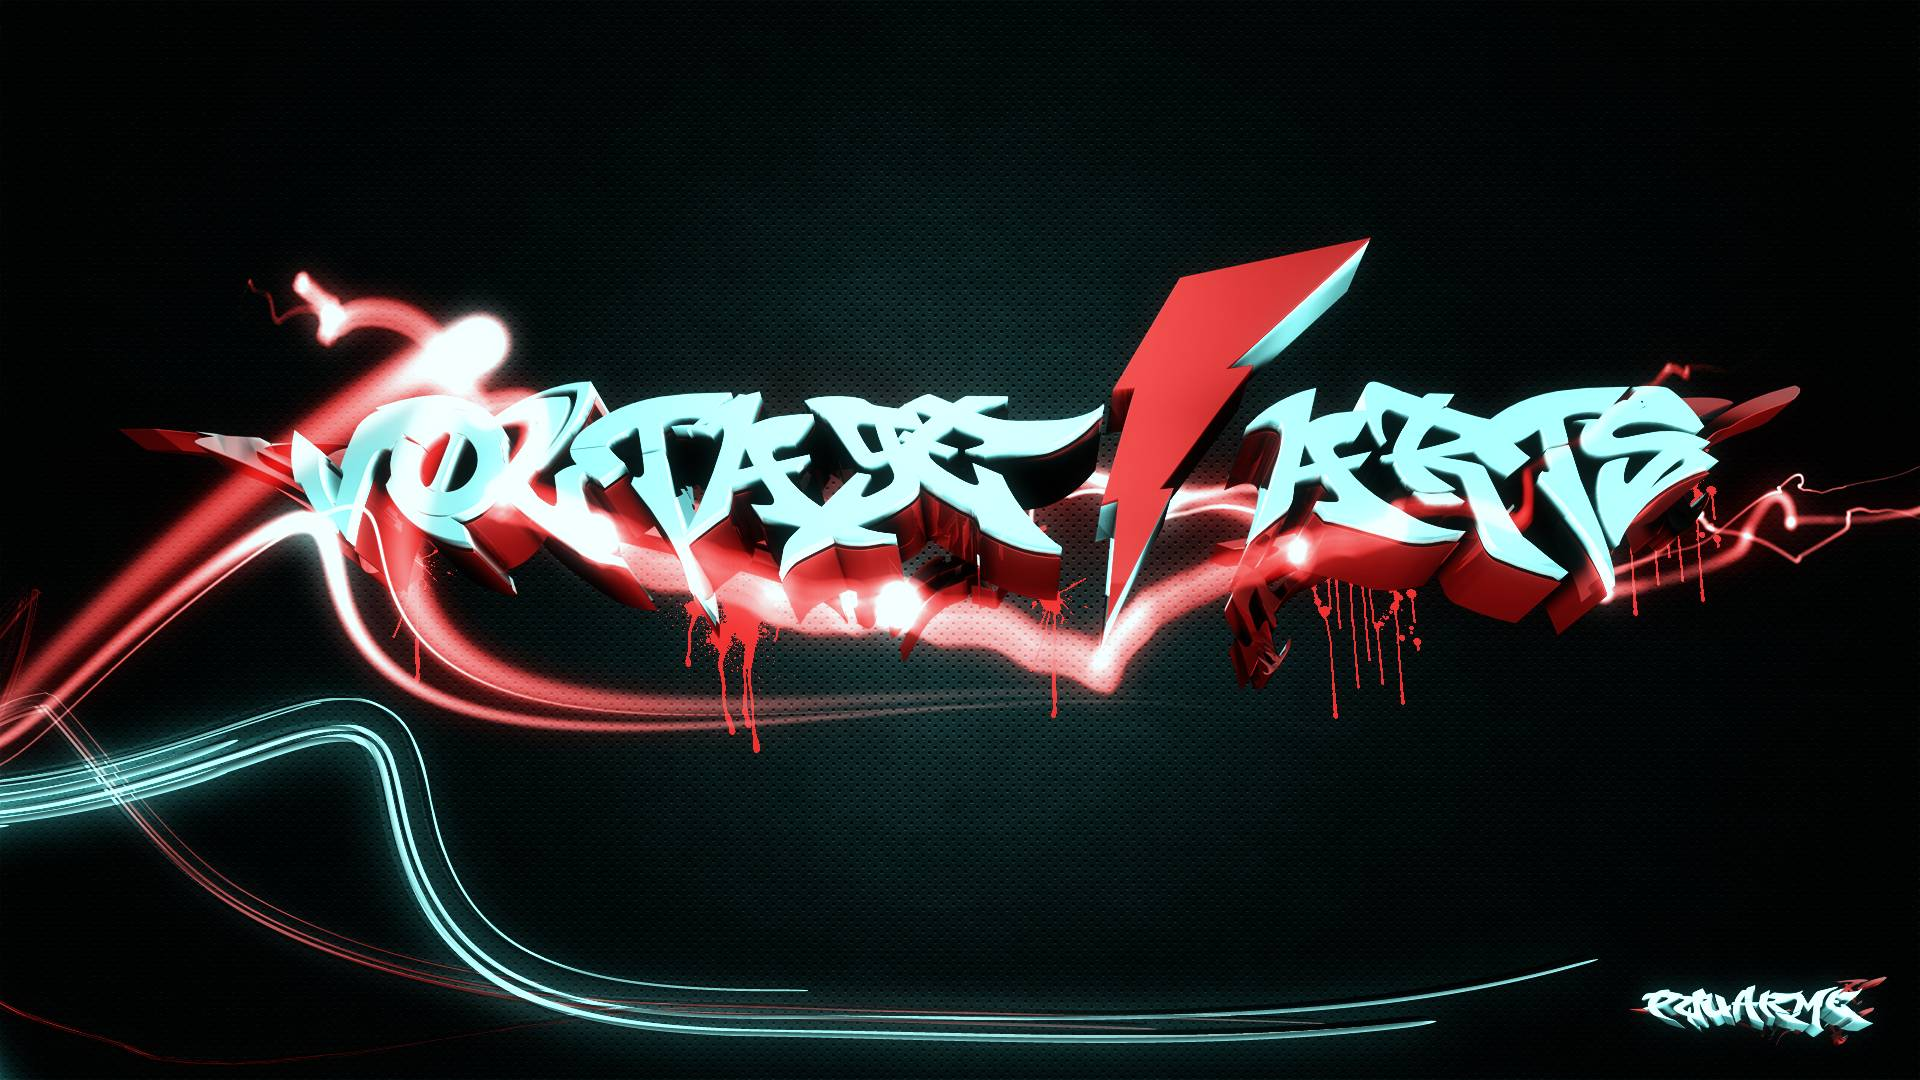 Red graffiti wallpapers wallpaper cave for Fondos tridimensionales